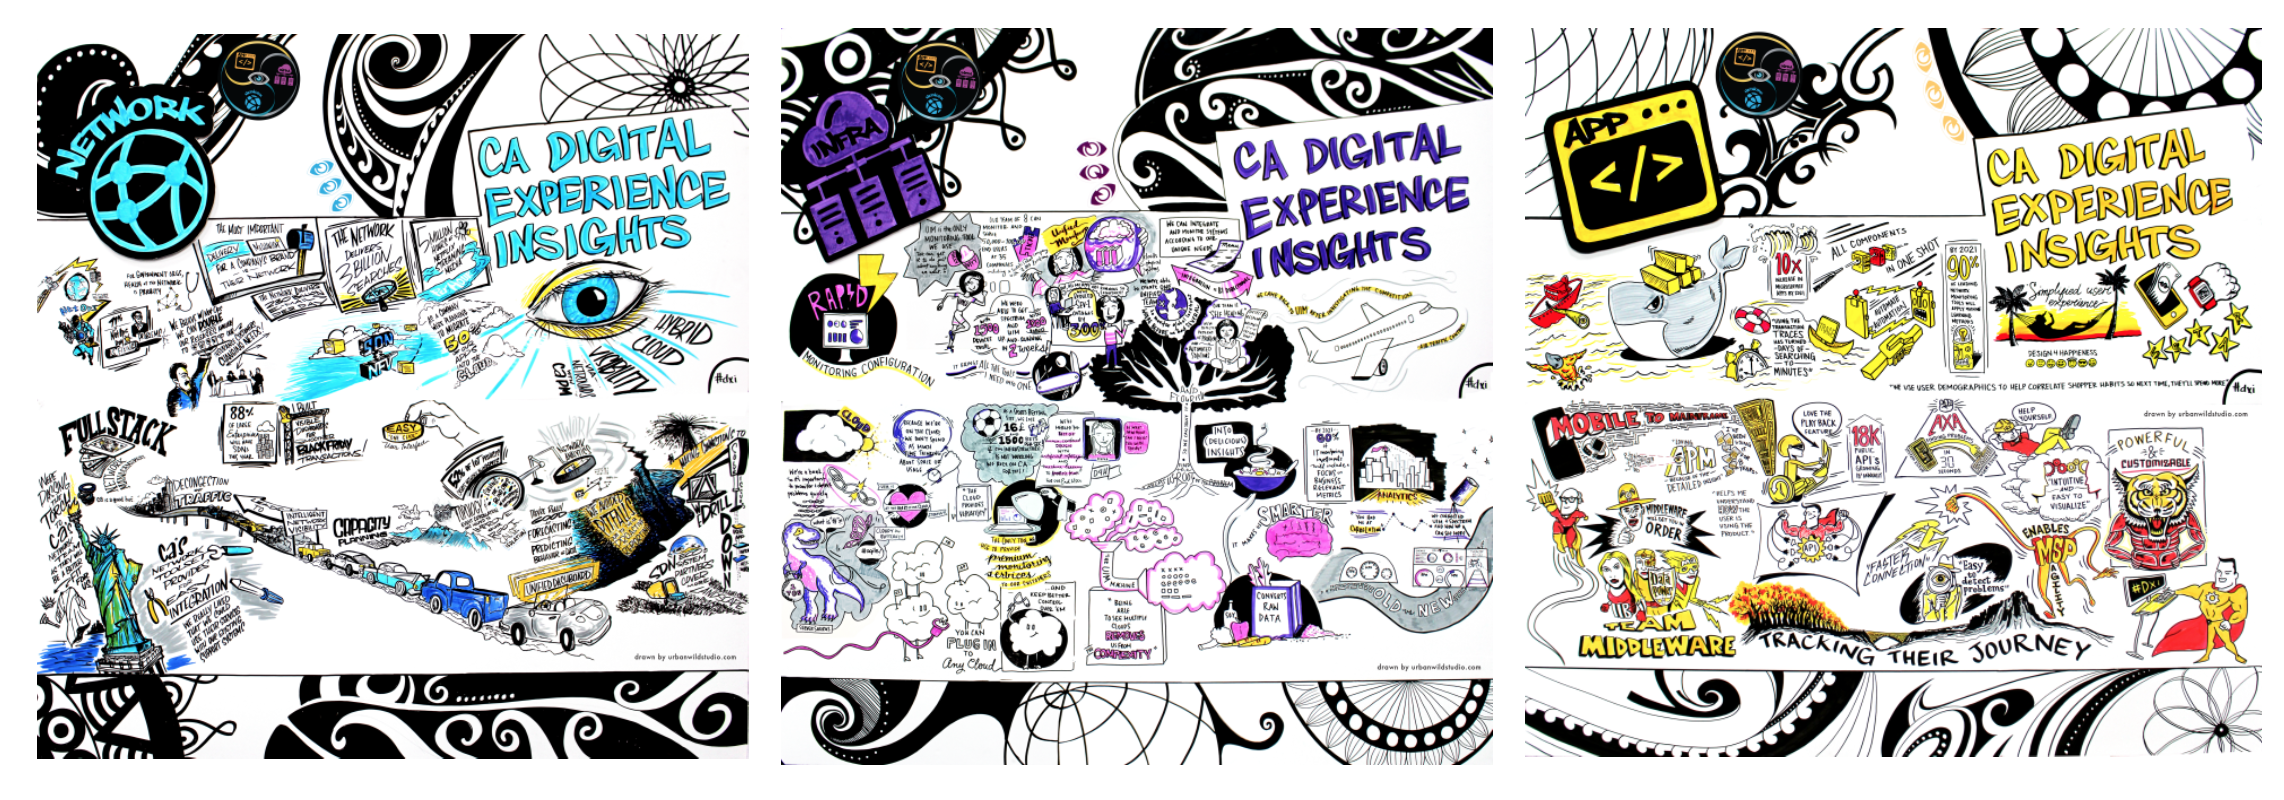 Graphic Recording Tower Flat Layout Expo CA Technologies Urban Wild Studio